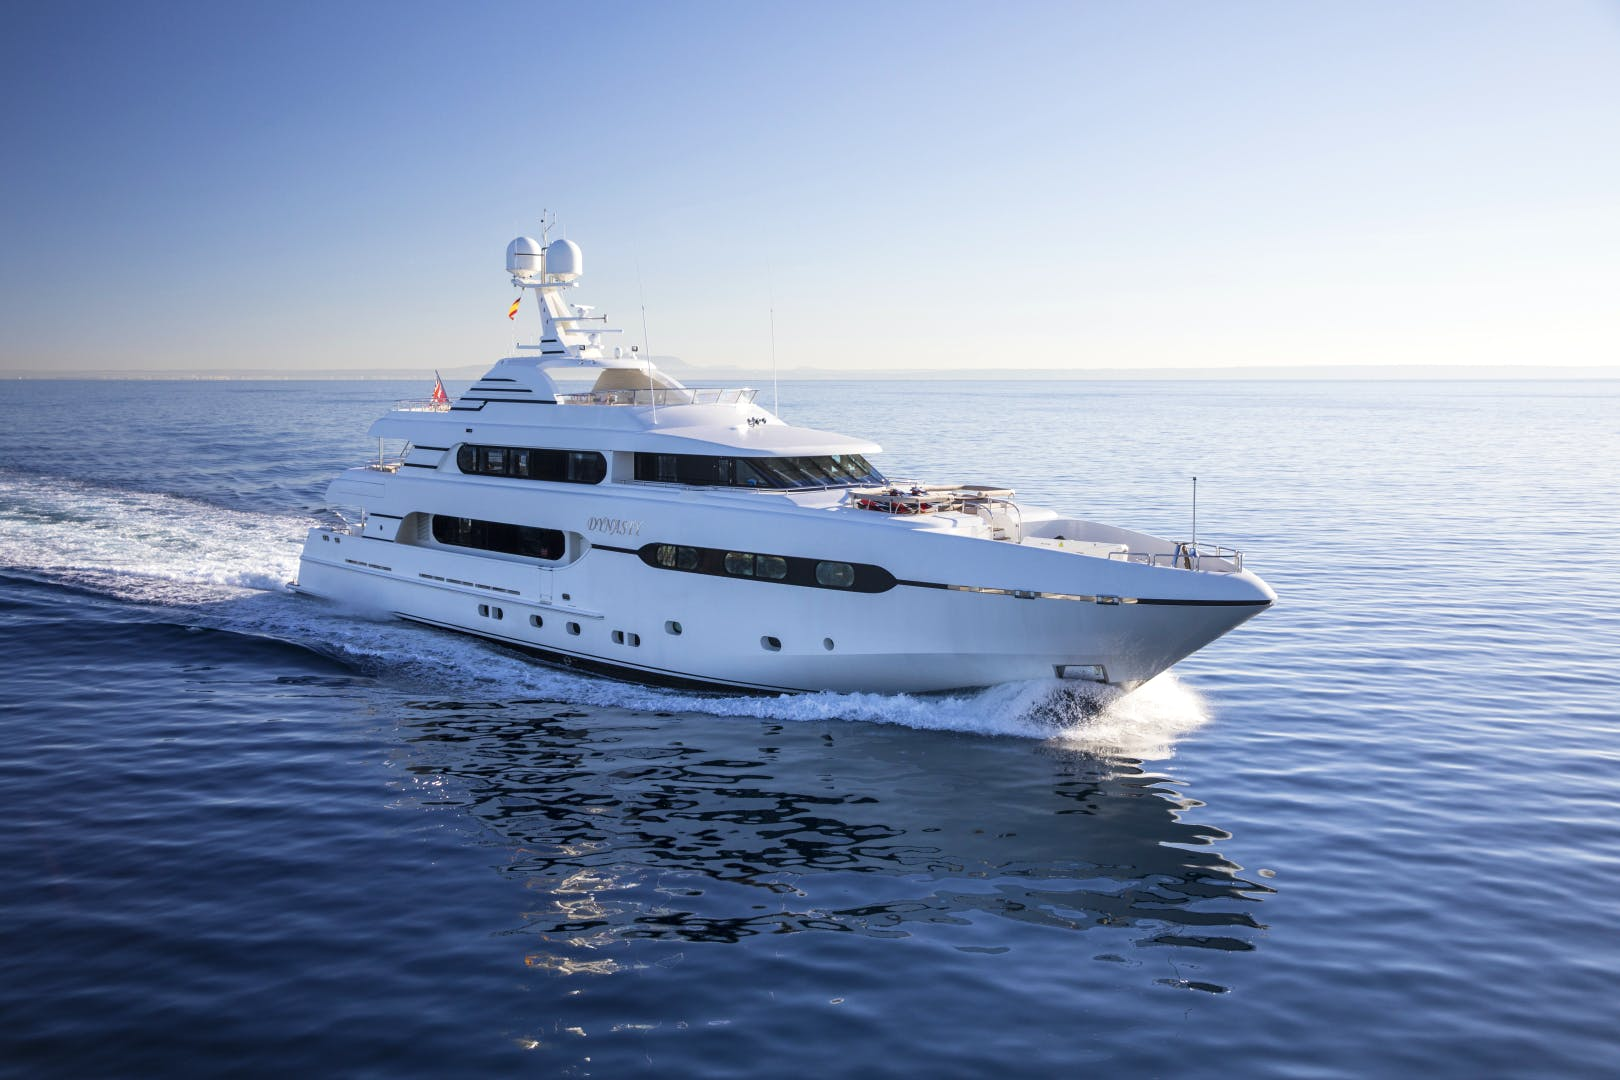 Sunrise superyacht for sale DYNASTY running profile in the mediterranean